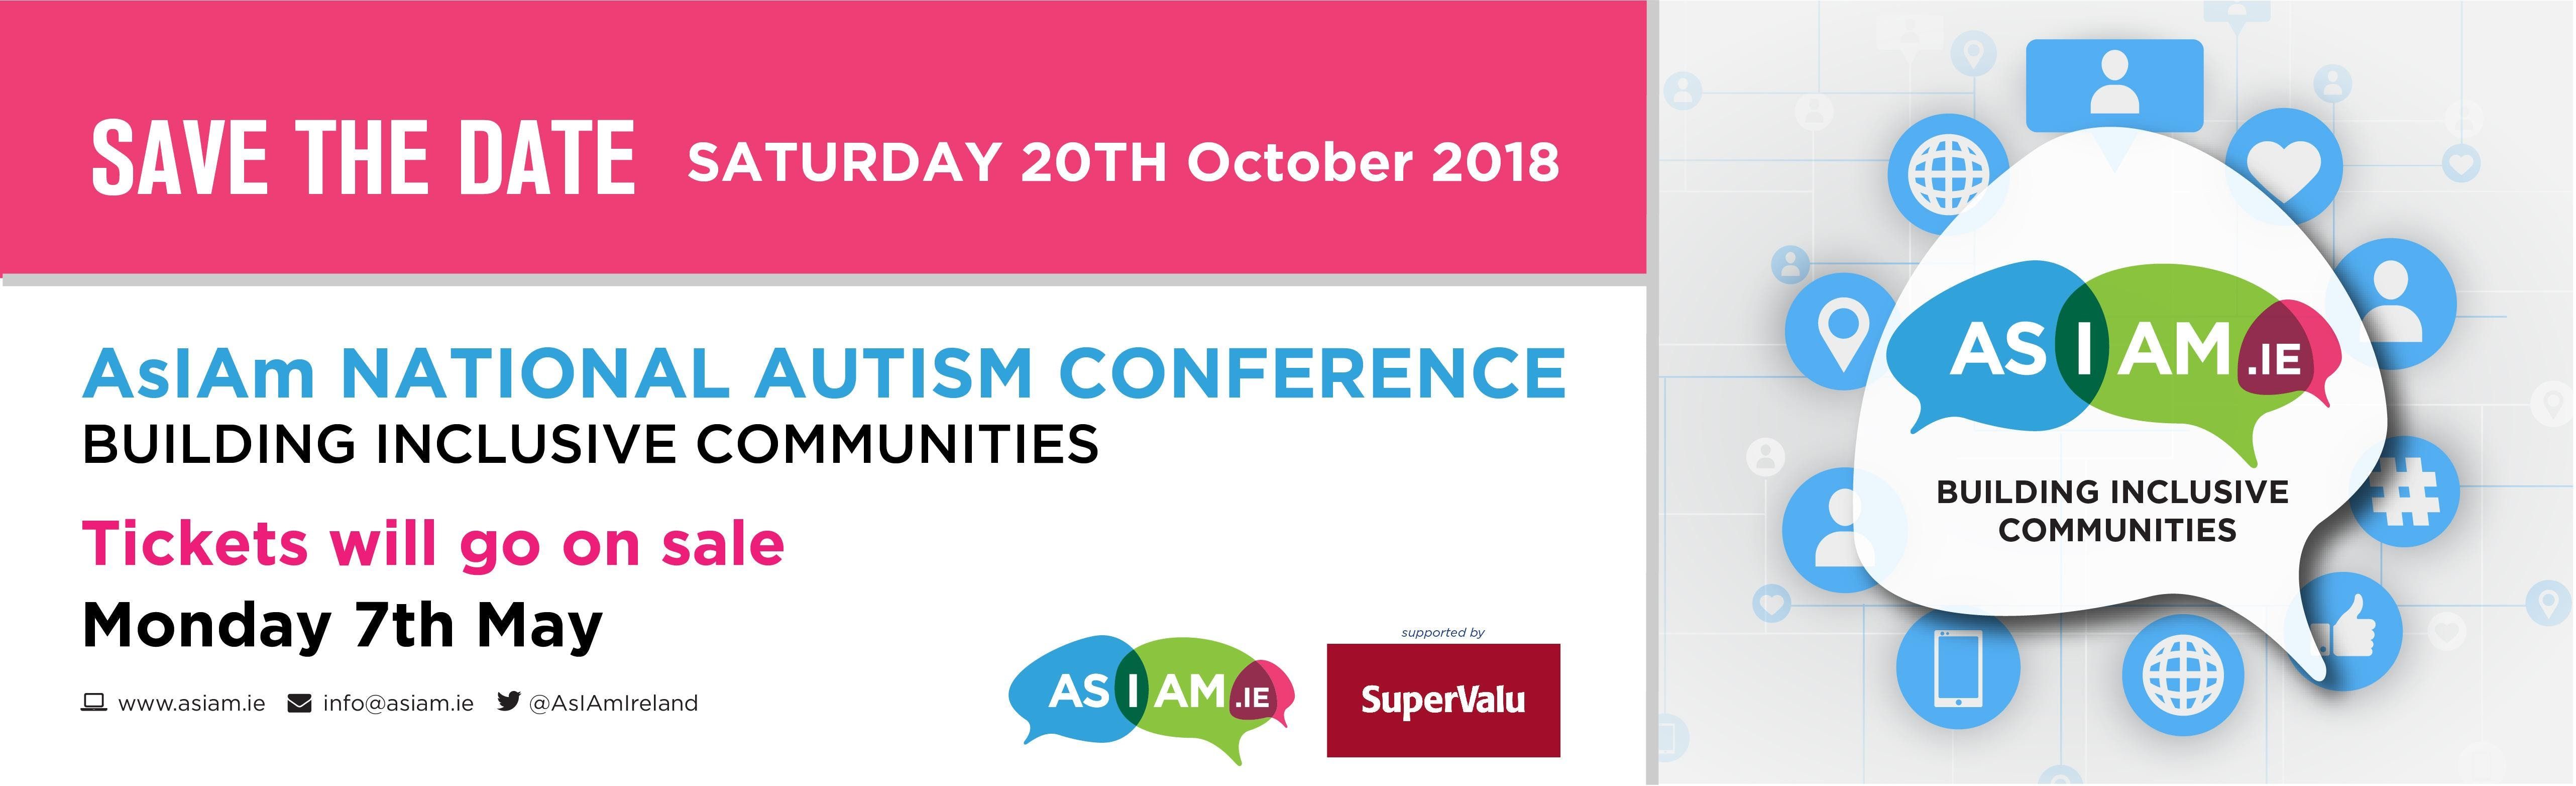 AsIAm National Autism Conference 2018: